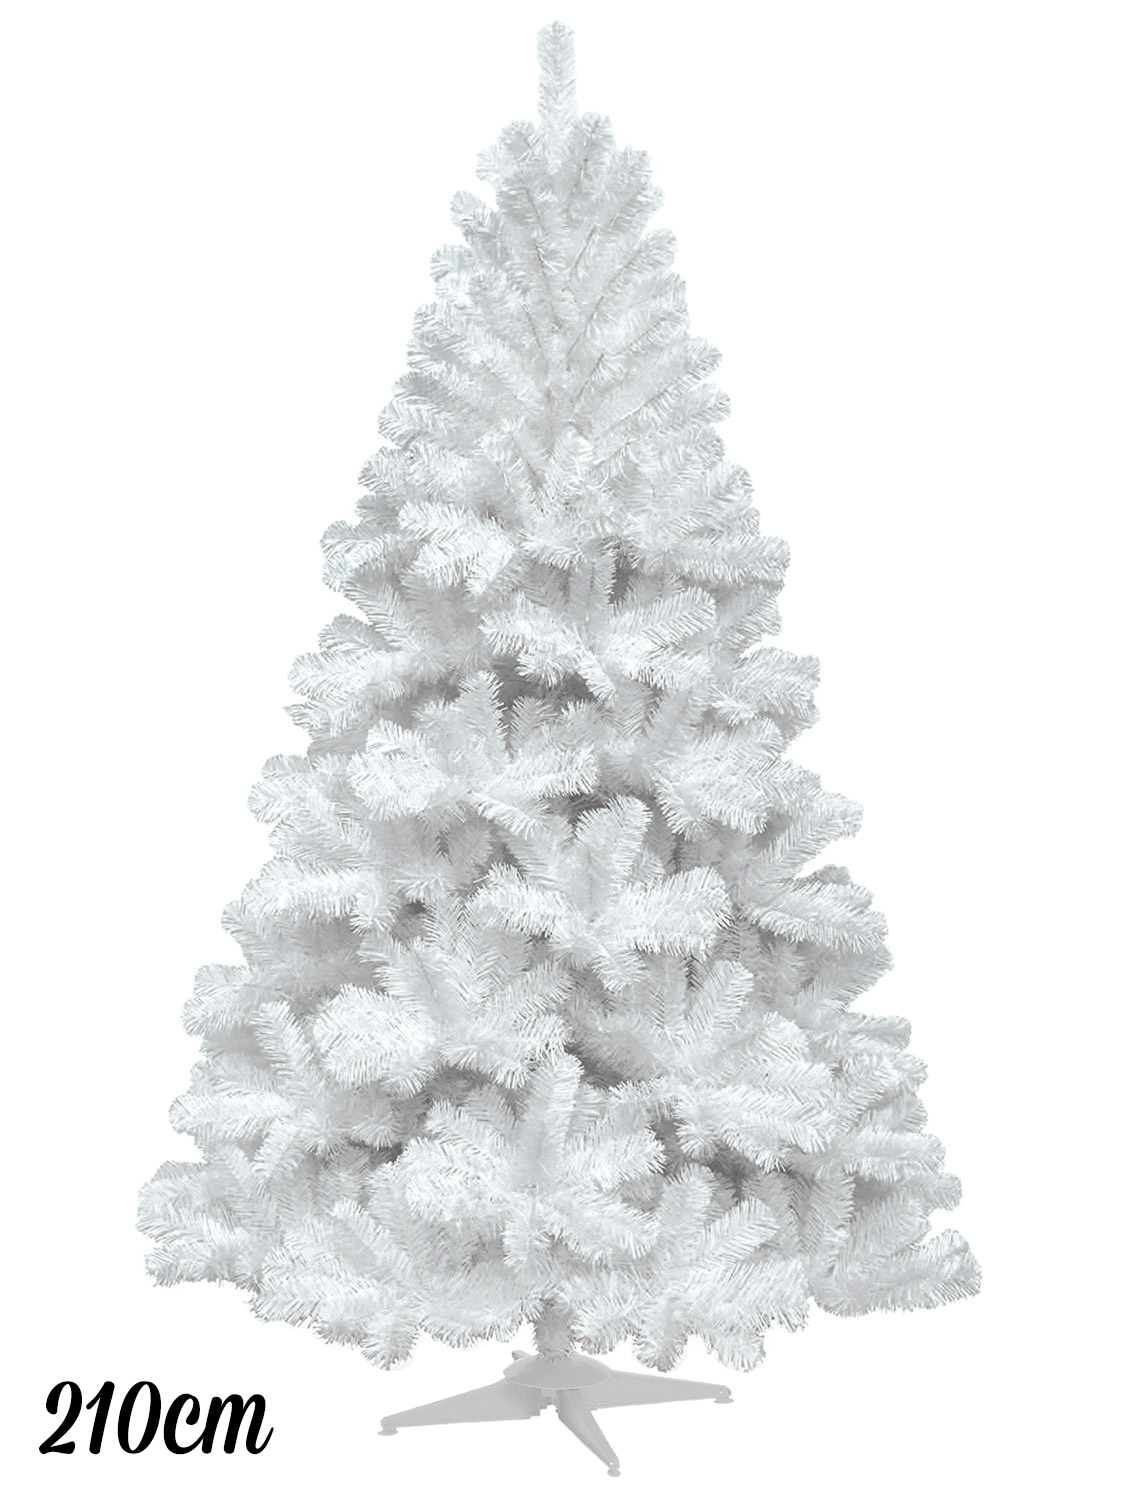 Colorado Spruce Christmas Tree 4ft 5ft 6ft 7ft Xmas Artificial Decoration Slim